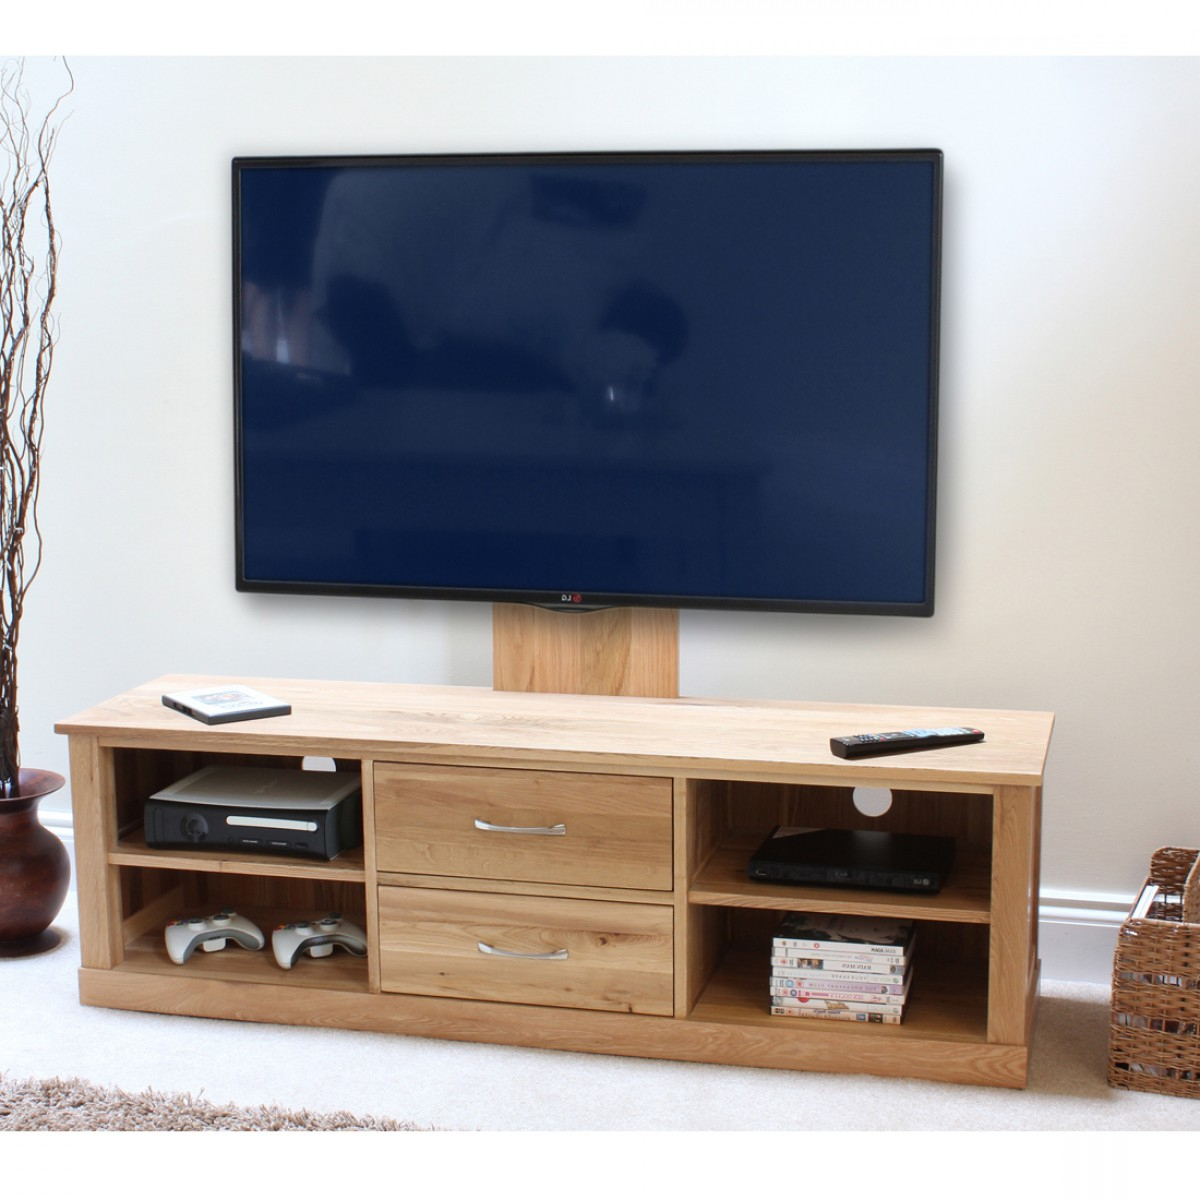 Widescreen Tv Cabinets In Most Popular Baumhaus Mobel Oak Widescreen Tv Cabinet & Mounted Adjustable (View 17 of 20)